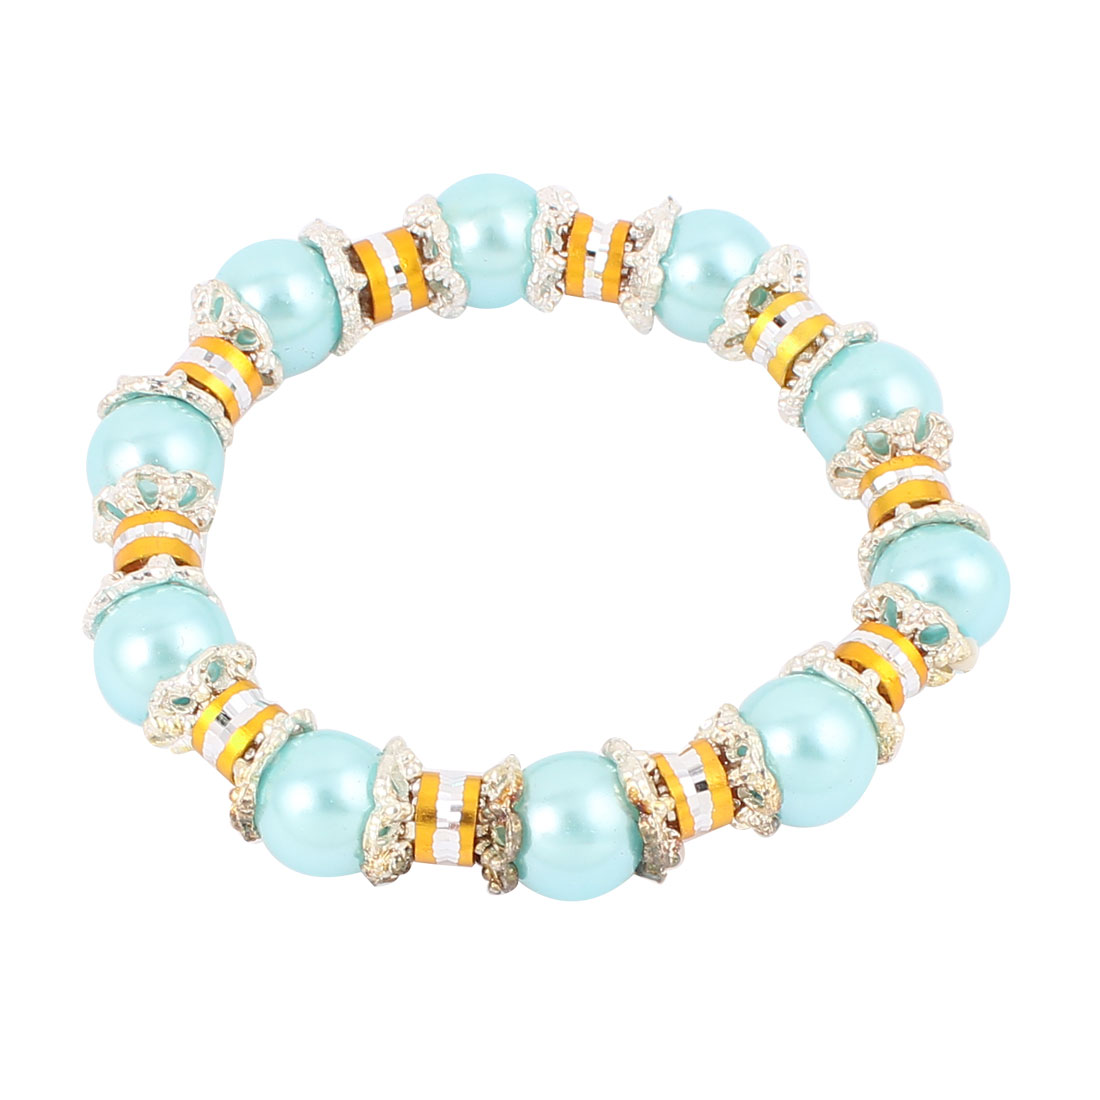 Lady Jewelry Imitation Pearls Beads Decor Elastic Wrist Bangle Bracelet Teal